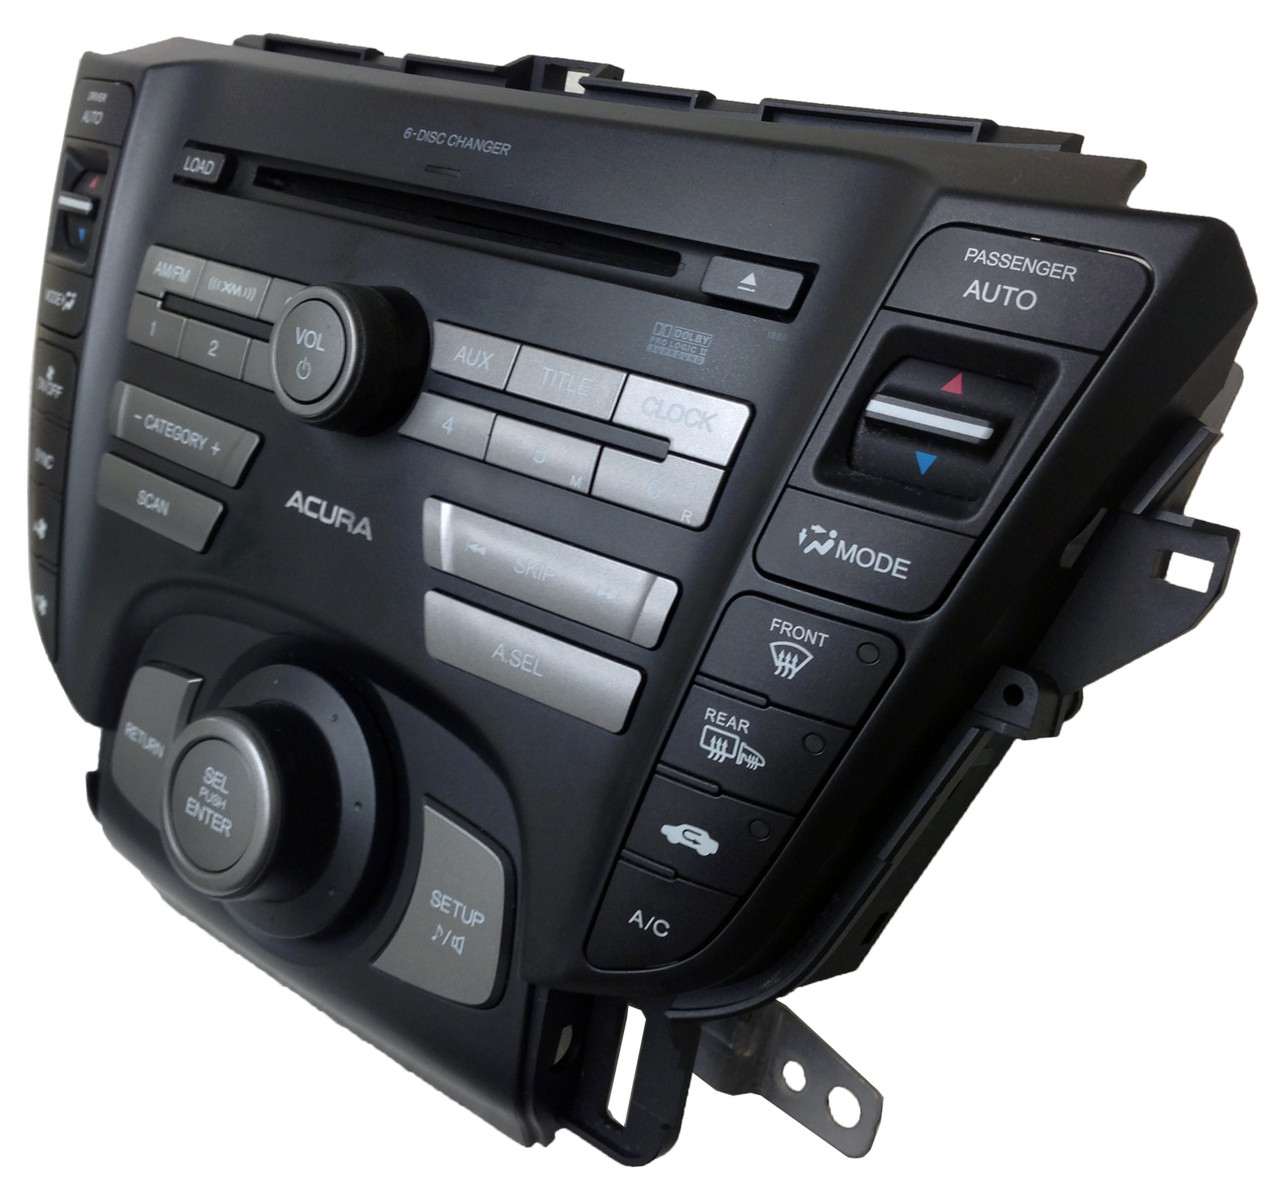 09 2010 2011 ACURA TL Radio Stereo 6 Disc Changer MP3 CD